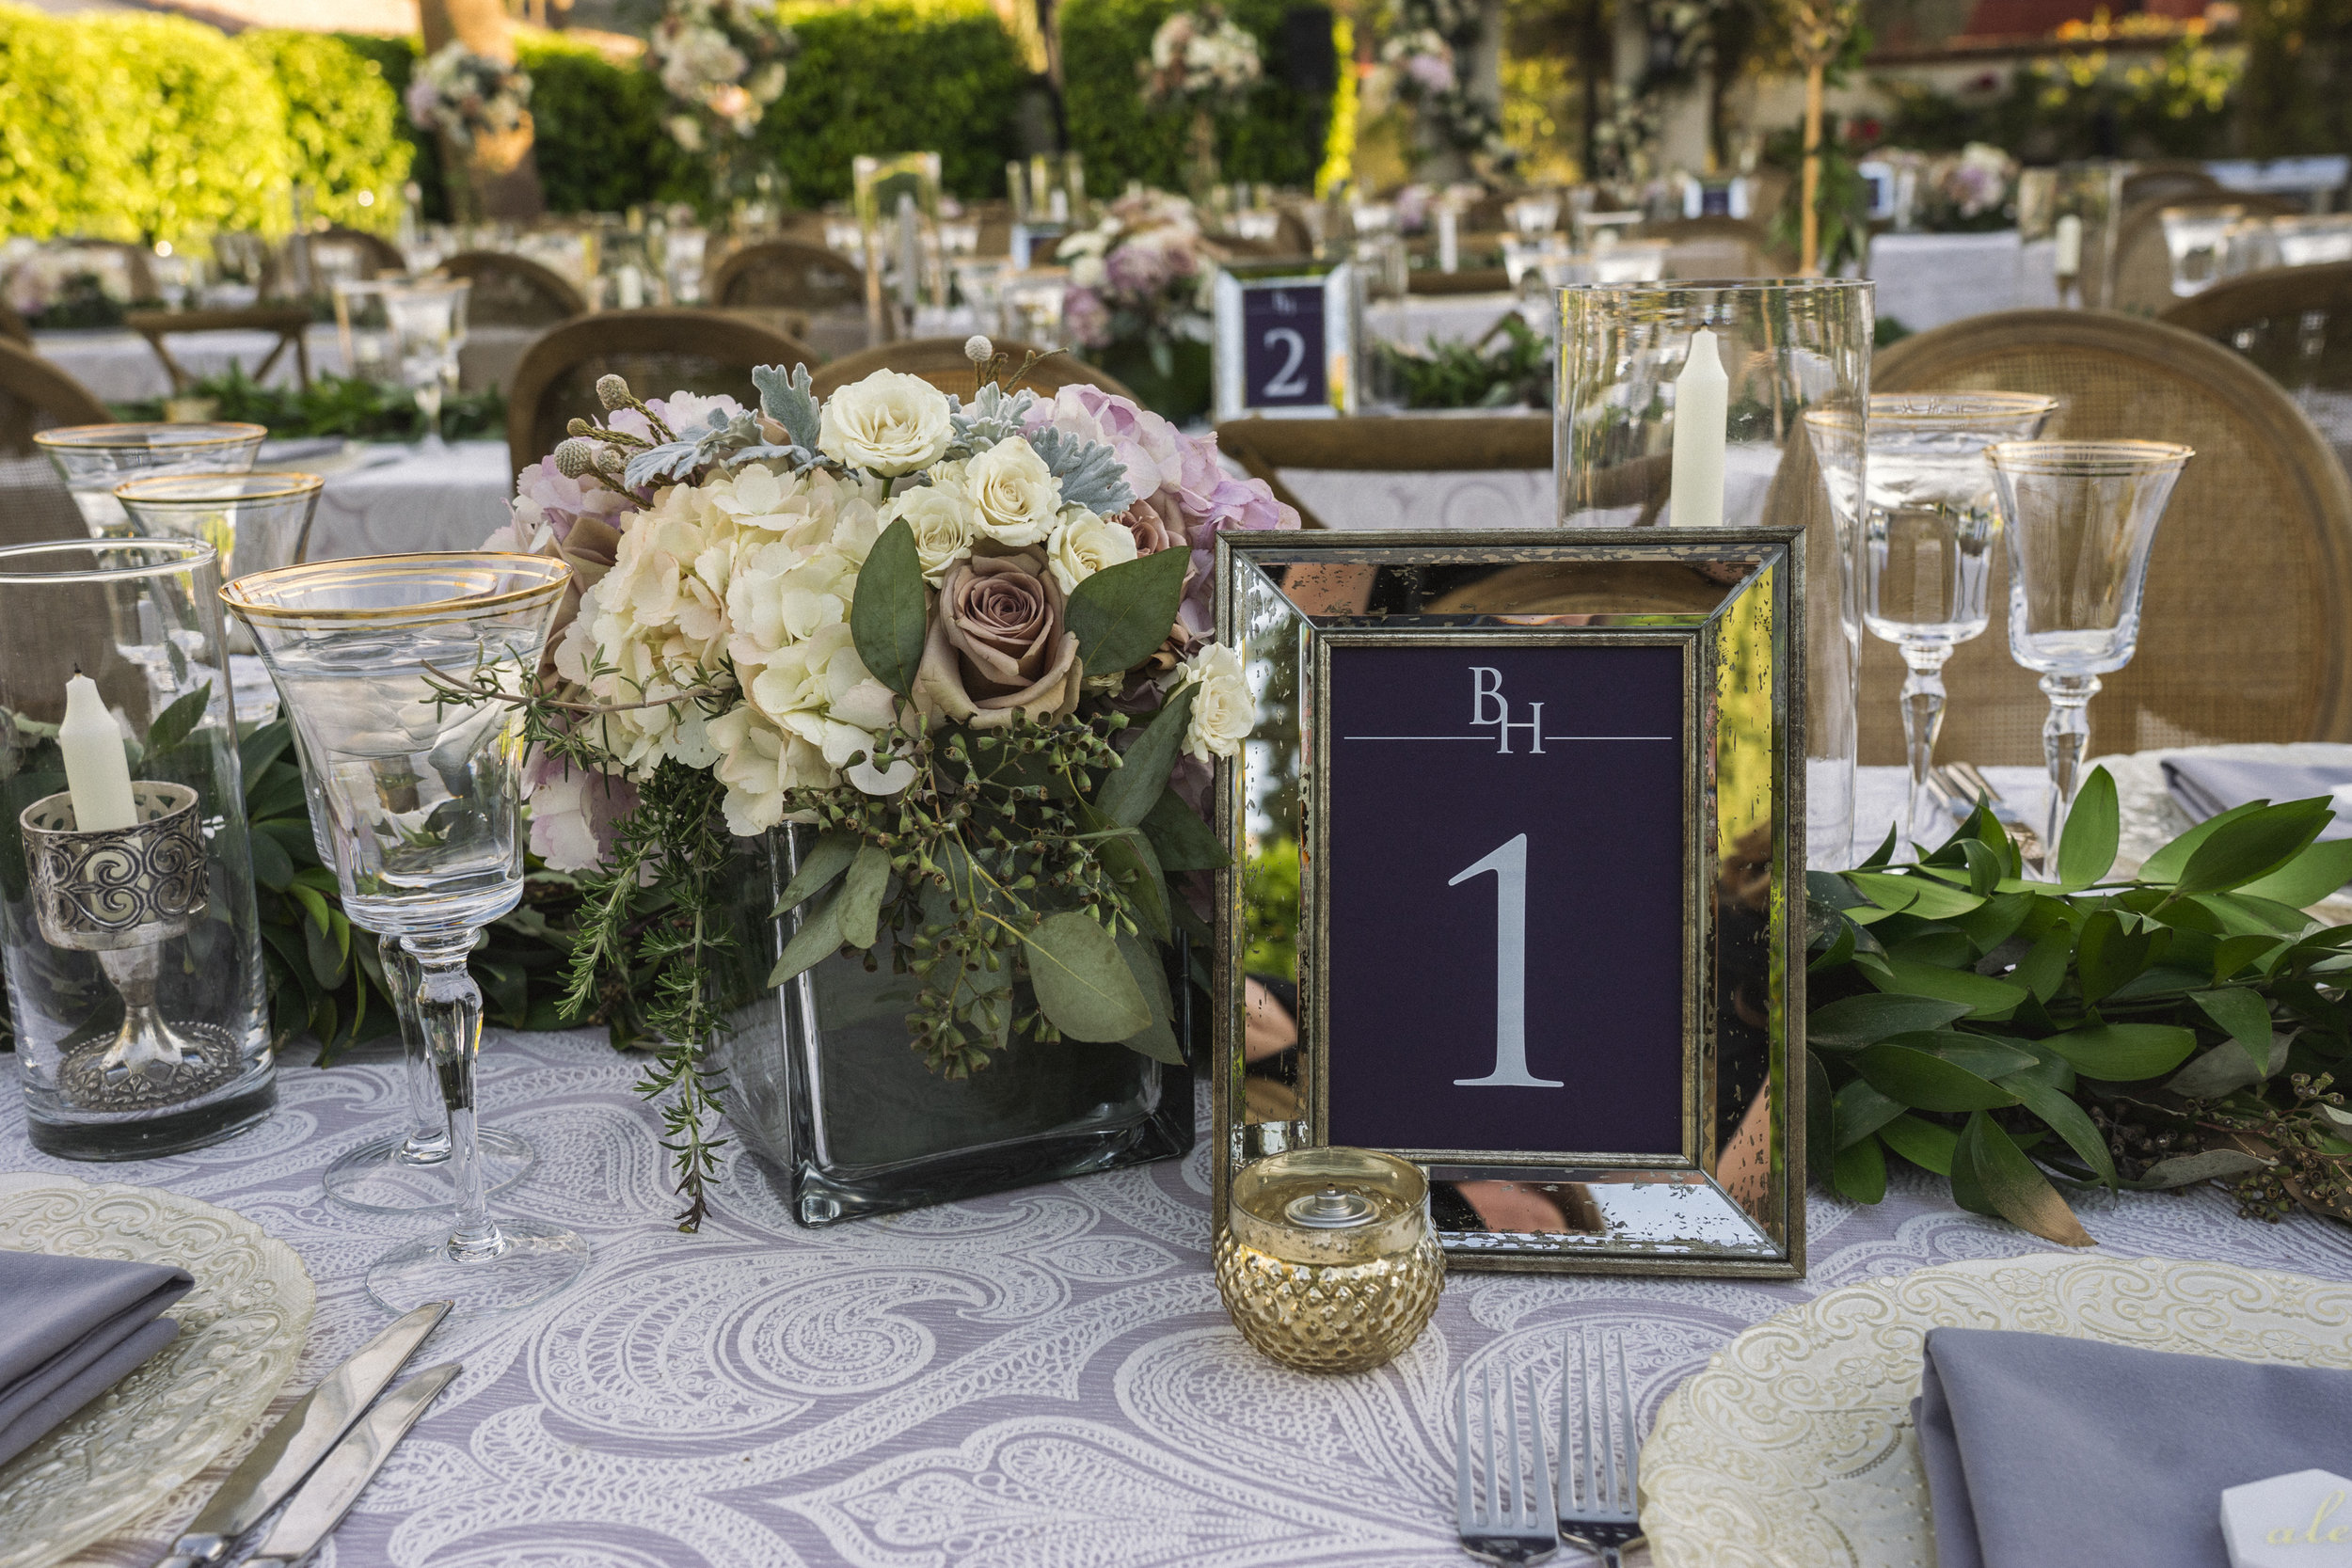 8 table number frame rose hydrangea centerpiece purple white lace linen dinner table Life Design Events photos by Keith and Melissa Photography.jpg